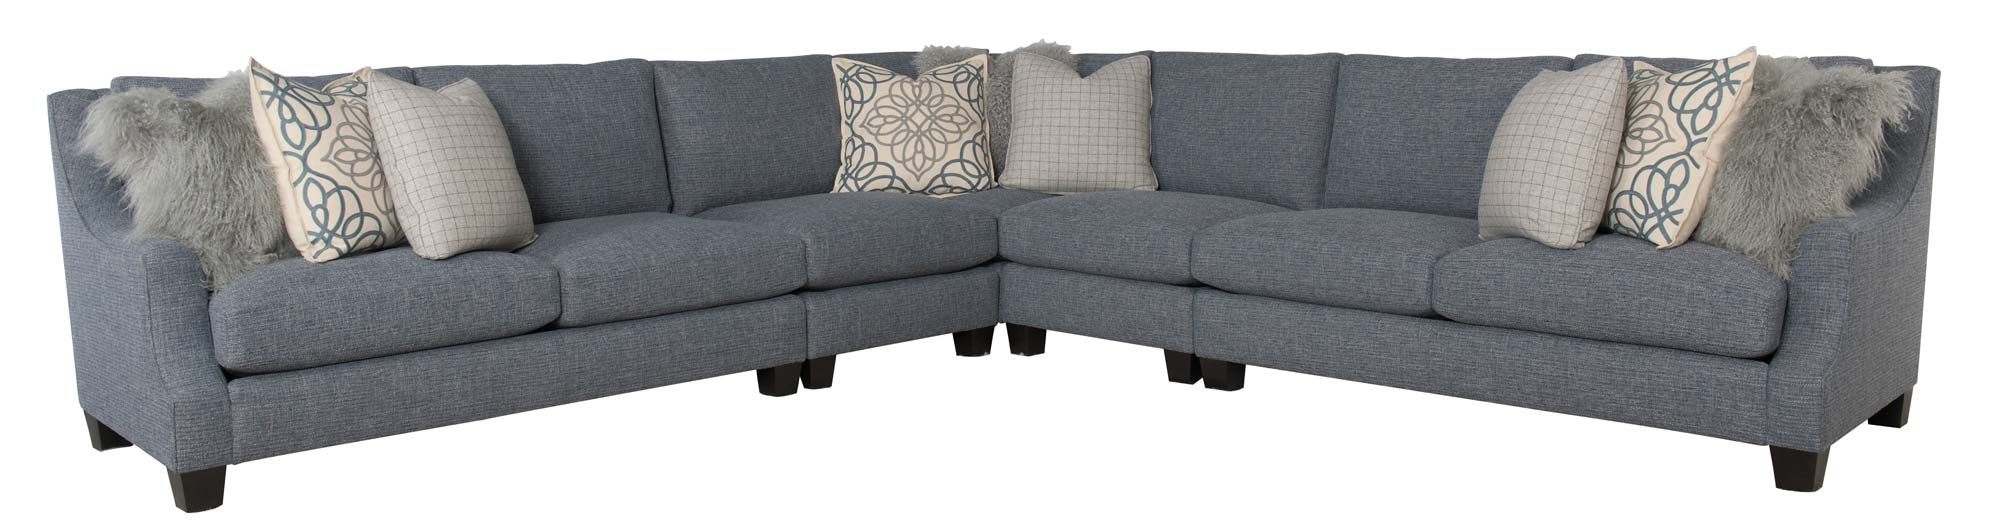 sectional sofa dallas fort worth dry cleaning at home bangalore bernhardt living room b5042 b5030 b5032 b5041